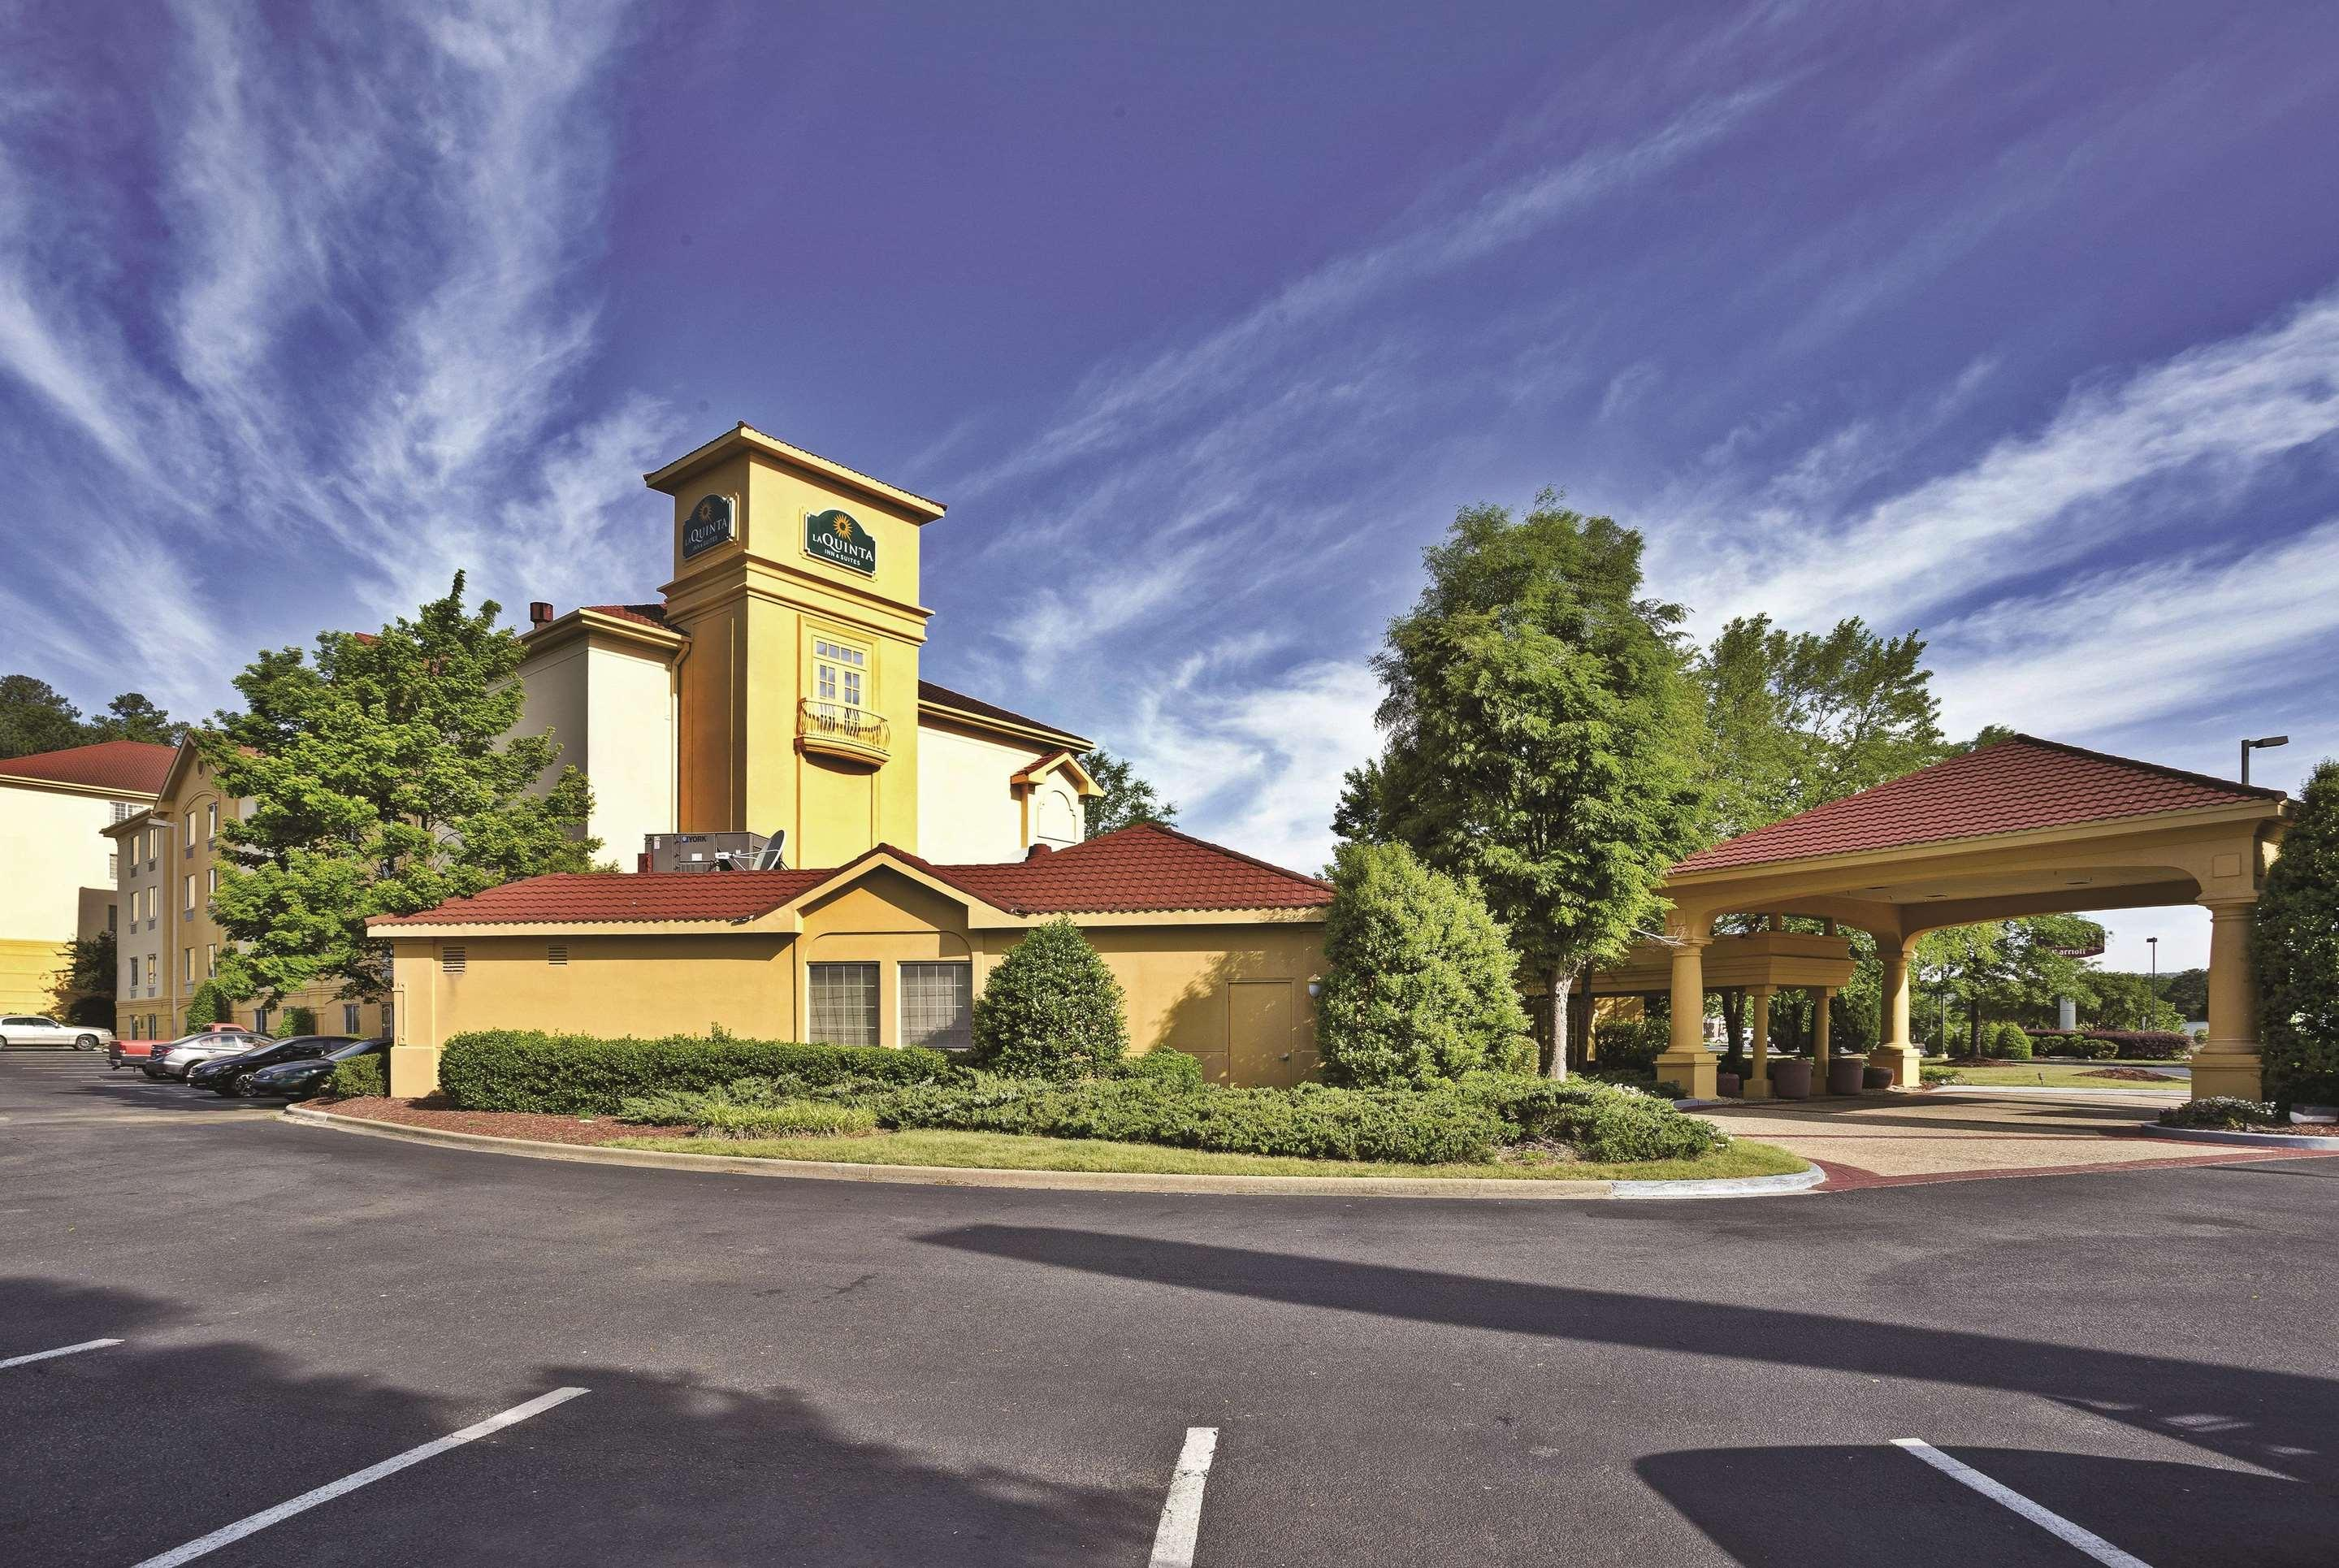 La Quinta Inn & Suites by Wyndham Birmingham Homewood